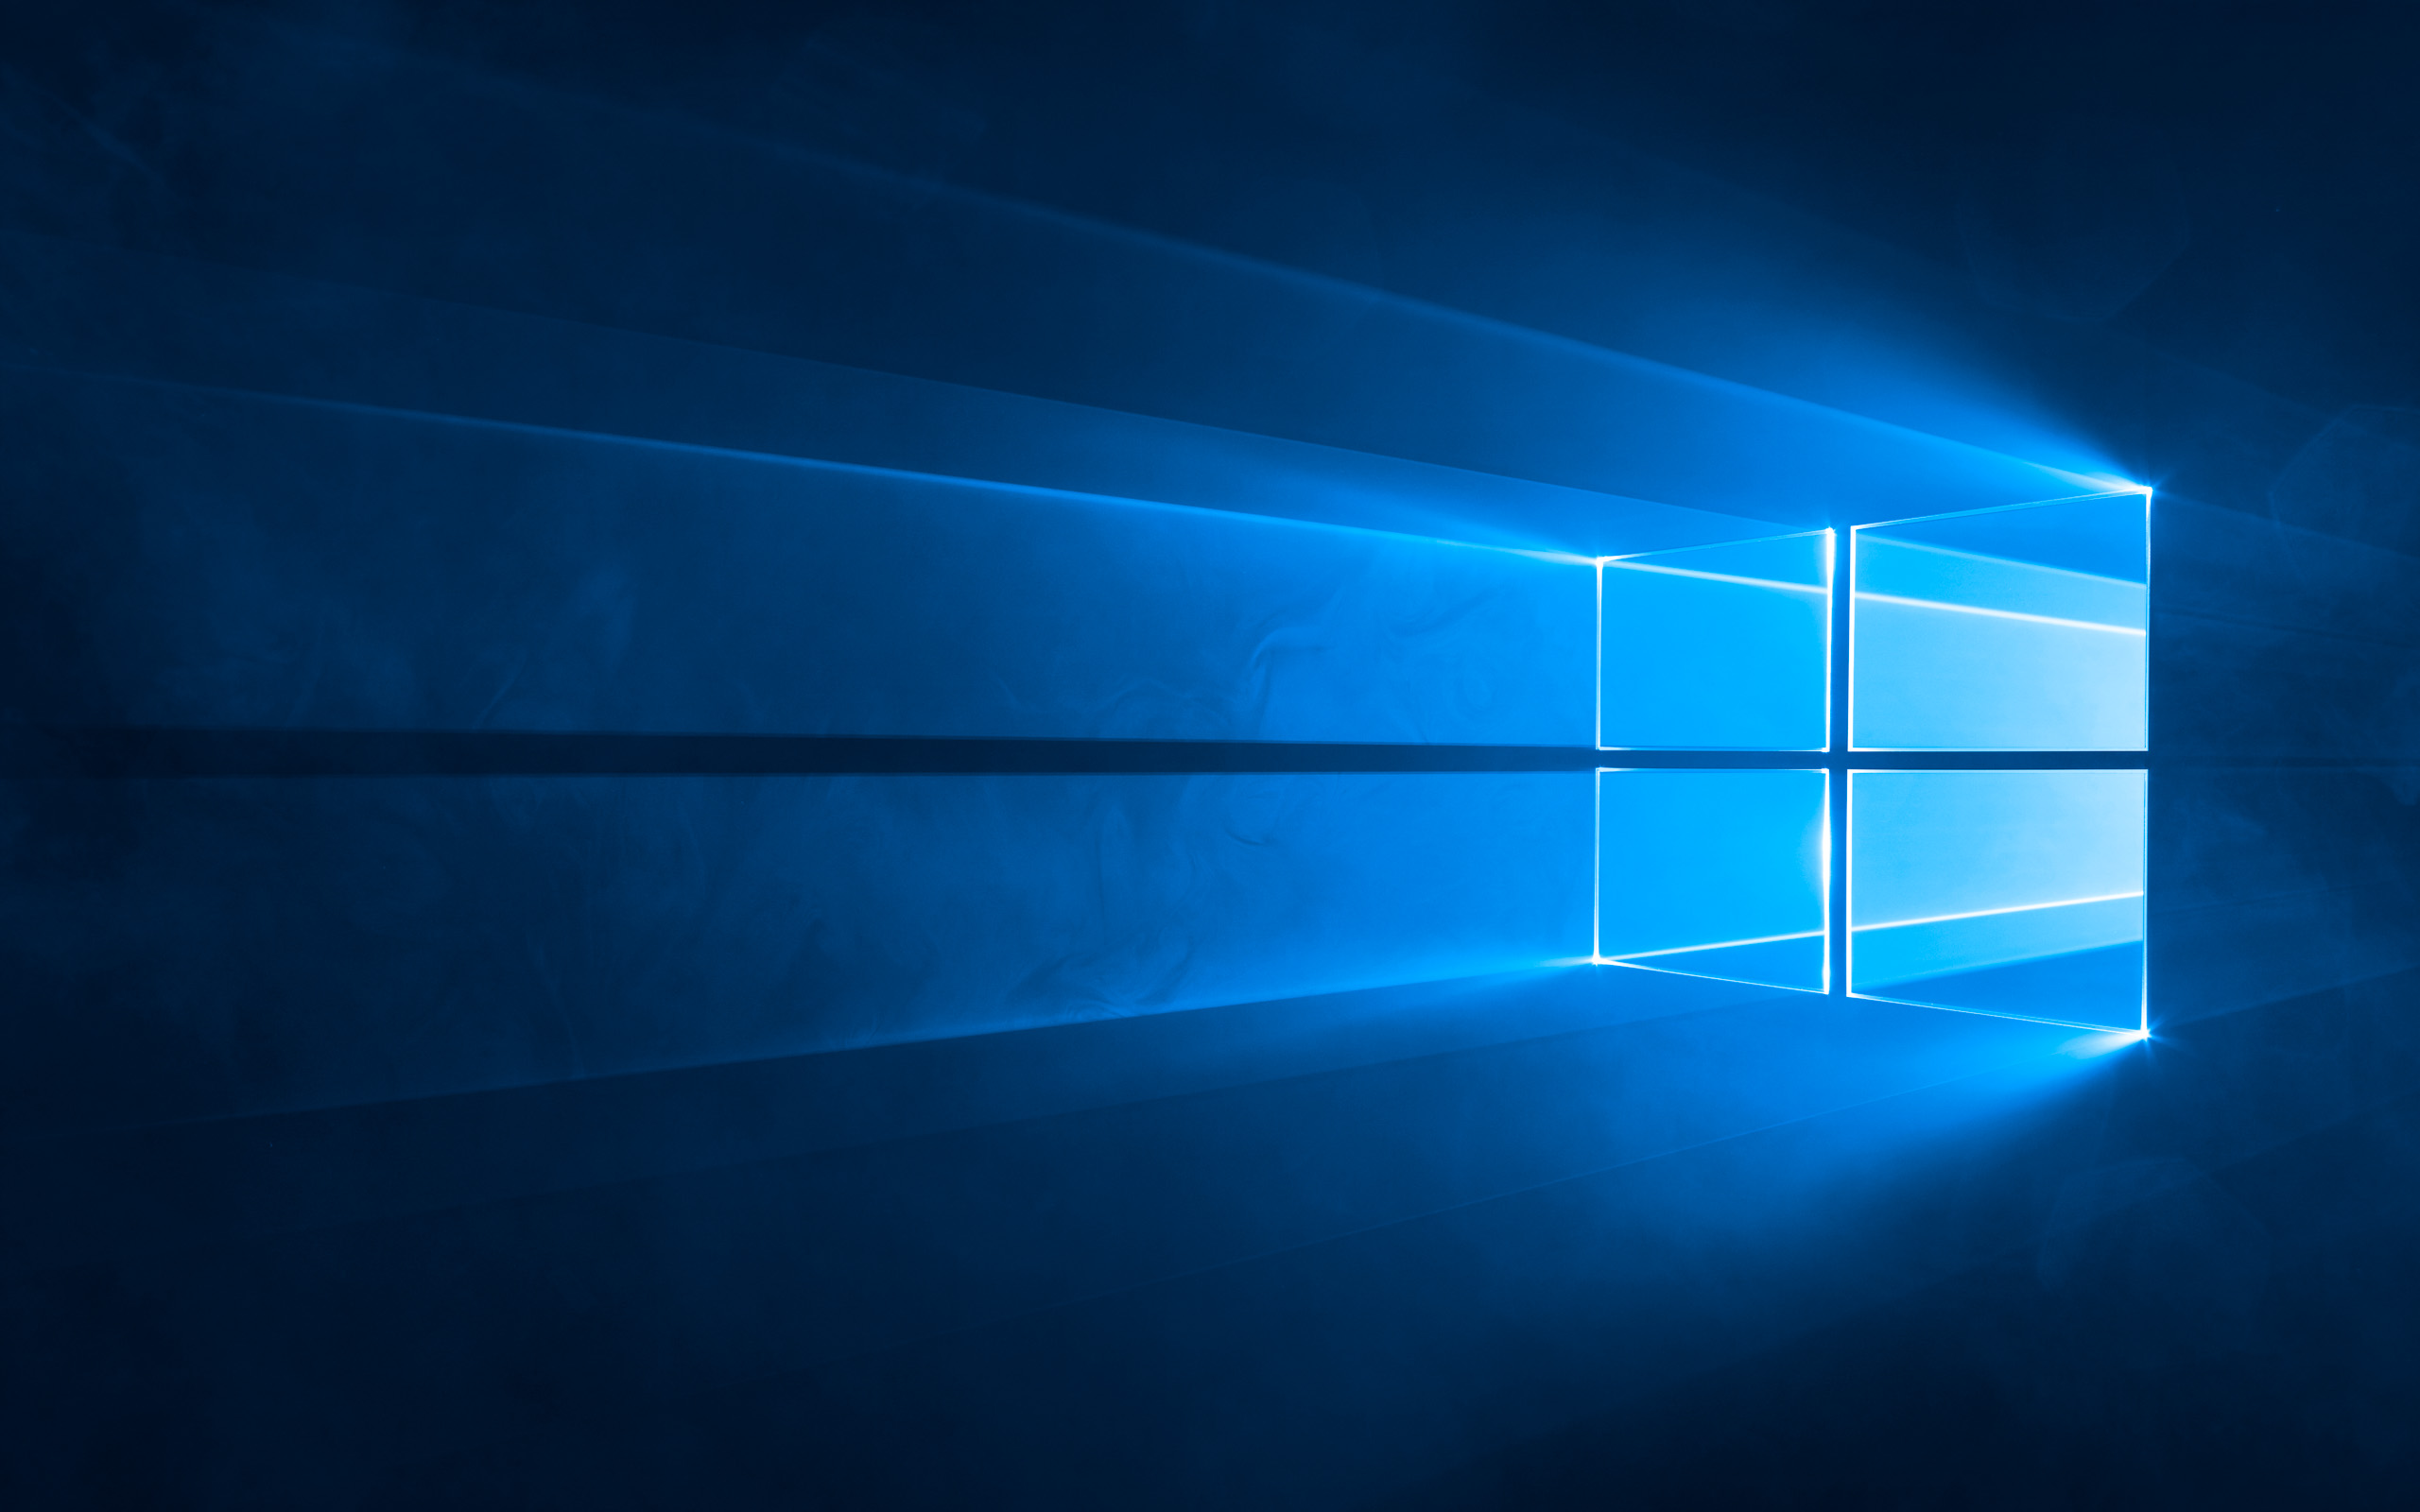 1400x900 Windows 10 Original 1400x900 Resolution Hd 4k Wallpapers Images Backgrounds Photos And Pictures